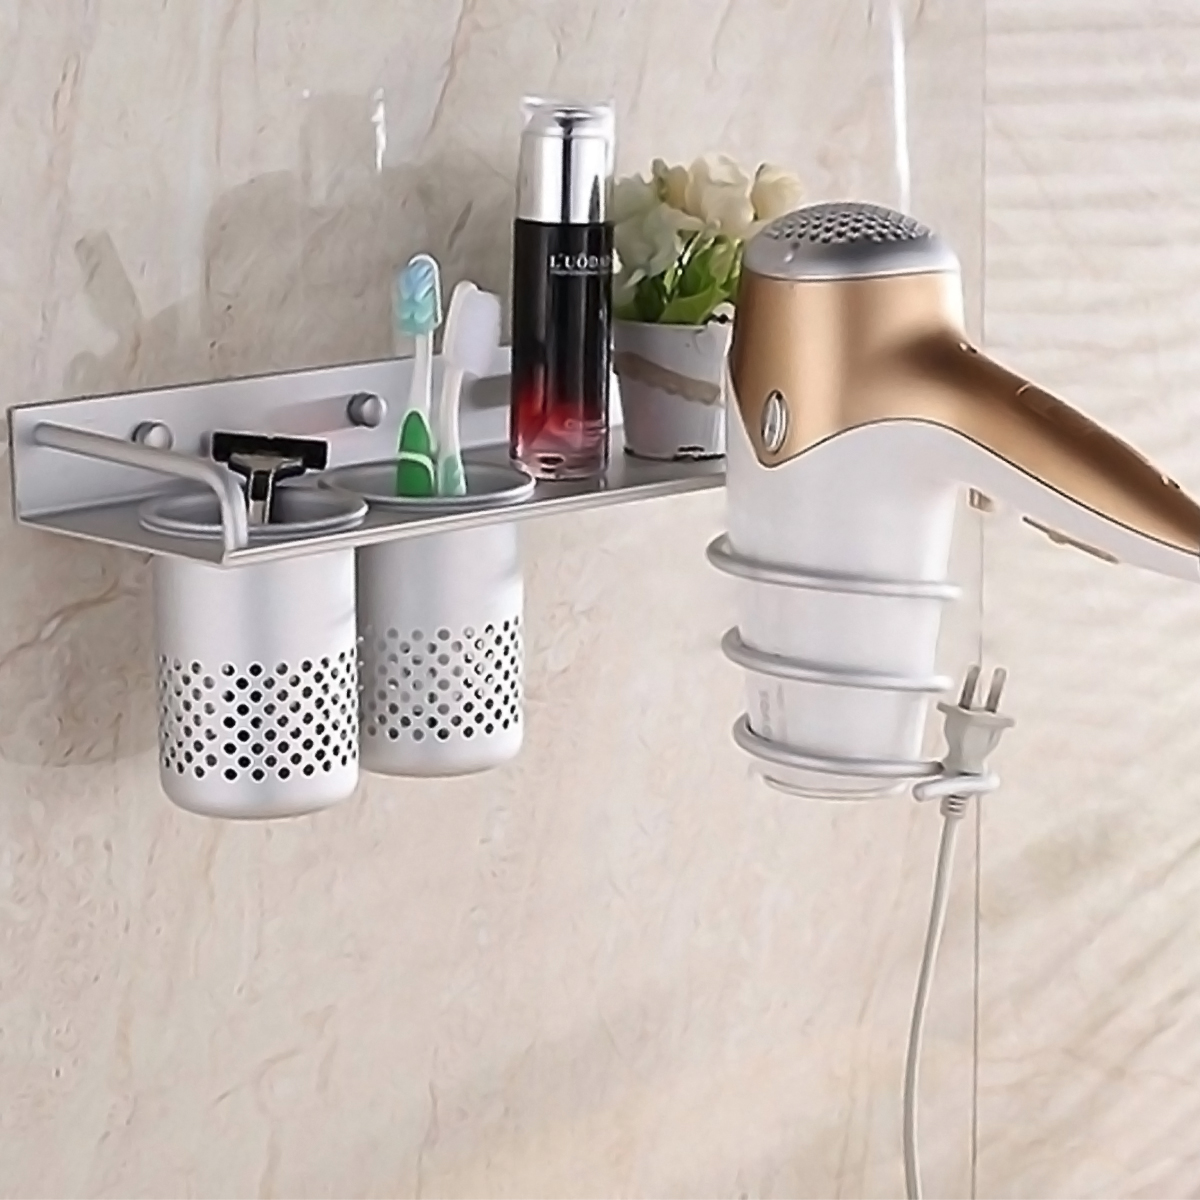 hair dryer stands wall mounted aluminum bathroom organizer shelf with 2 cups